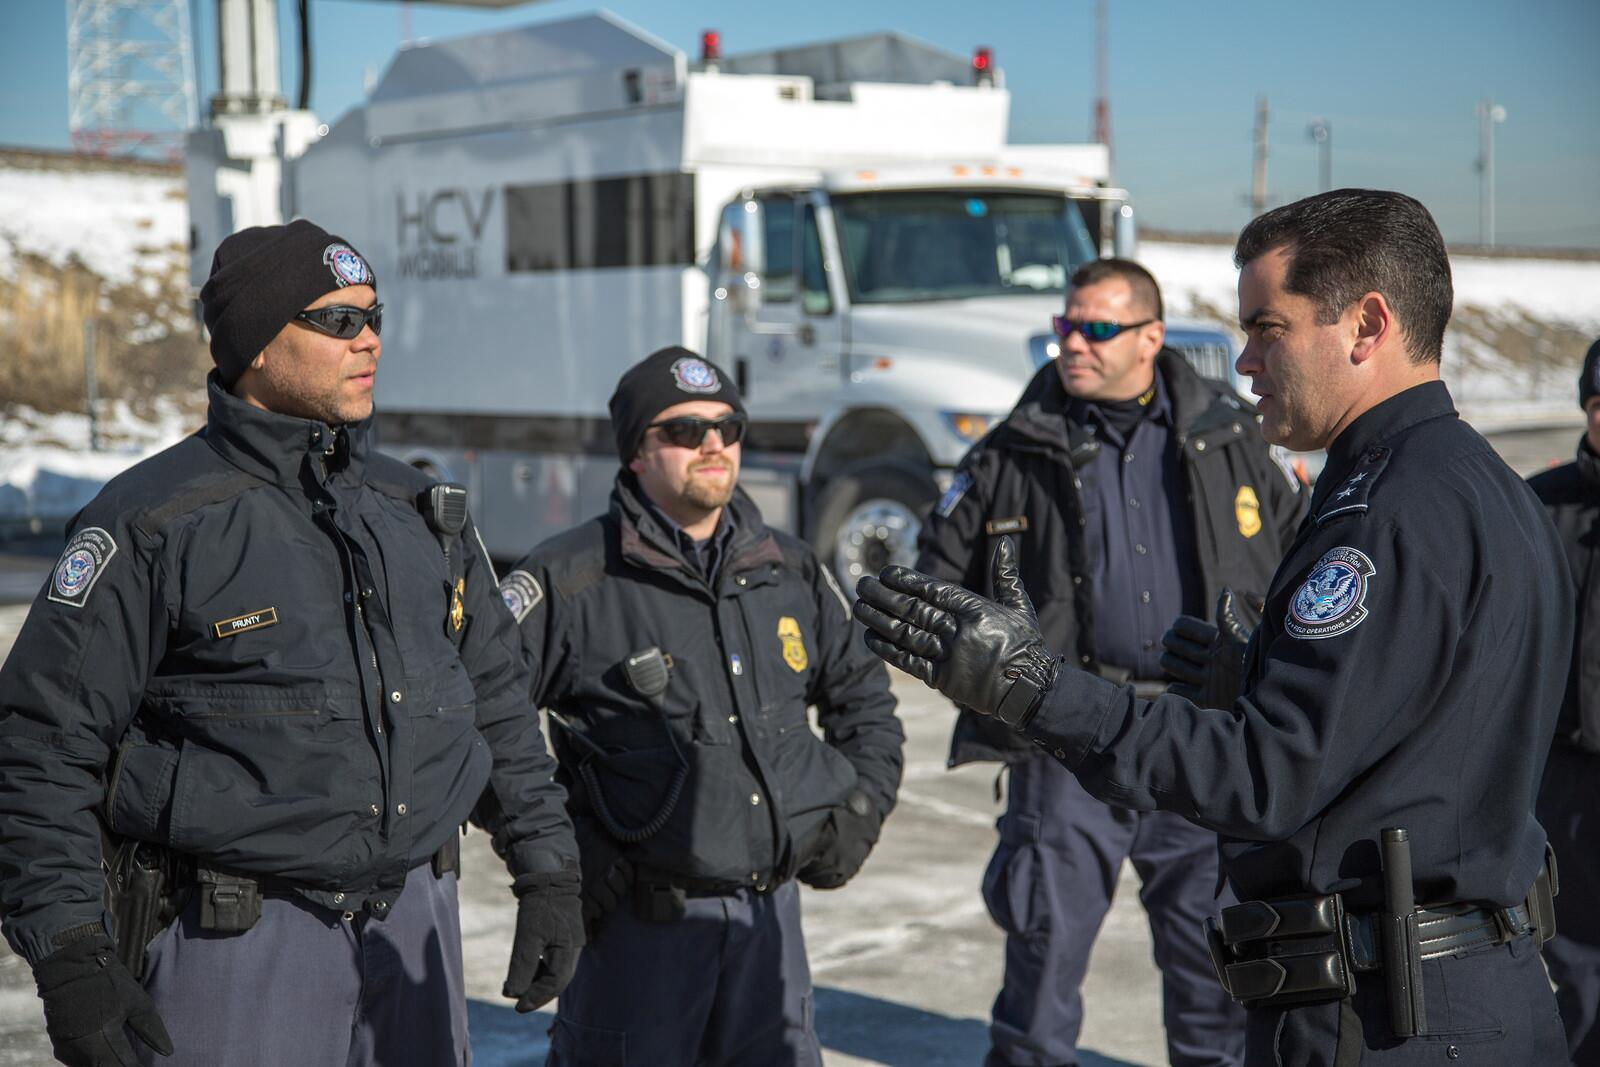 Robert Perez, director of New York area port operations and coordinator of CBP's security support for Super Bowl XLVIII, discusses deployment of high-tech scanning equipment at the stadium. CBP provided scanning of all incoming trucks and air support for the big game. <em>(photo by Josh Denmark)</em>